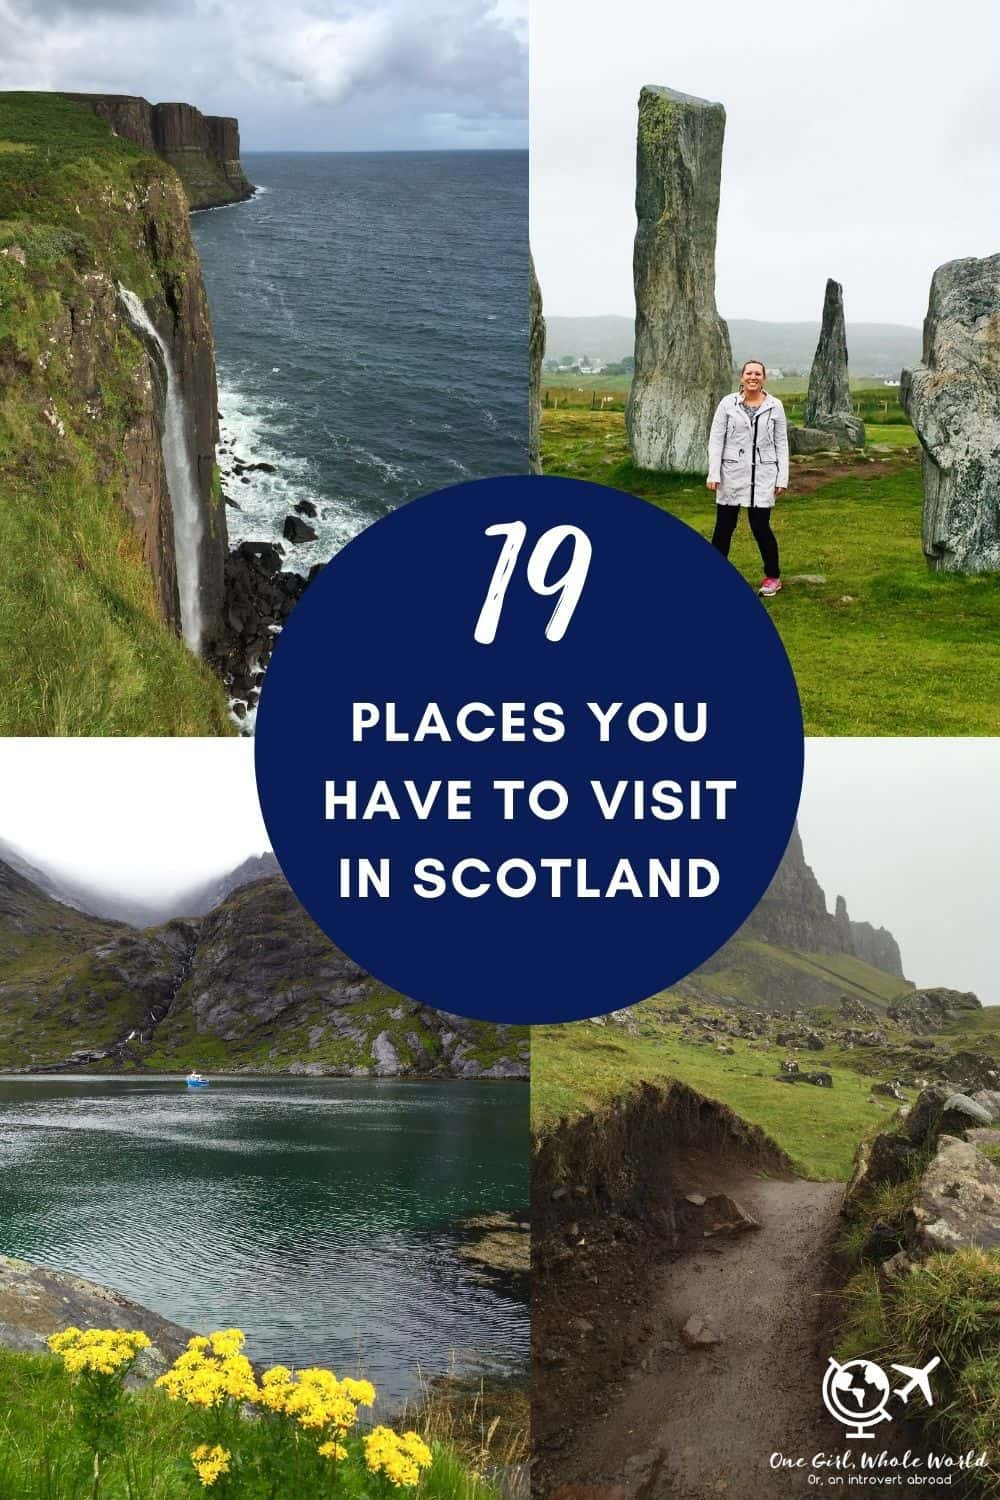 19 of the Best Places to Visit in Scotland | If you're wondering where to visit in Scotland, here are some of the most beautiful & interesting places that should be on your itinerary. From the beaches of Harris & Lewis to the remote Loch Coruisk, ancient standing stones, hiking, wildlife, castles, and more! What to do in Scotland, Scotland itinerary tips. #scotland